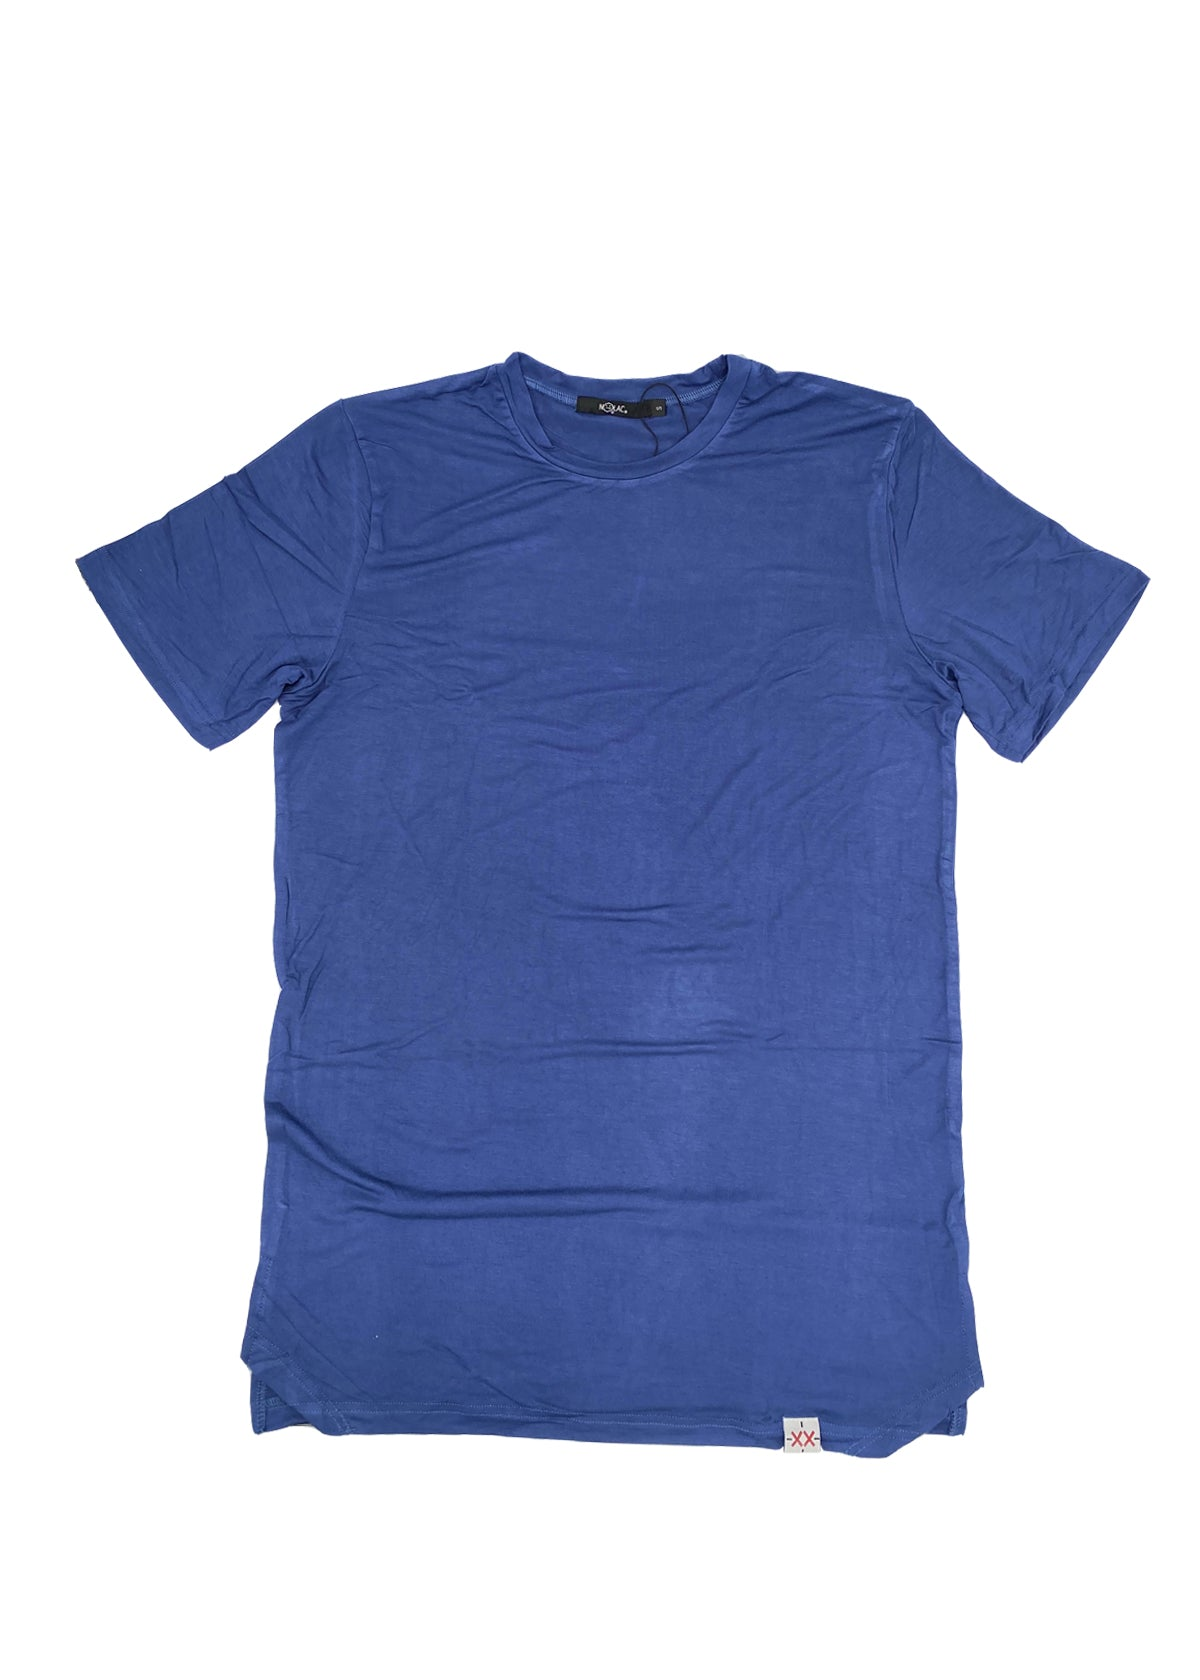 SS Fundamental T Shirt (Stone Blue)